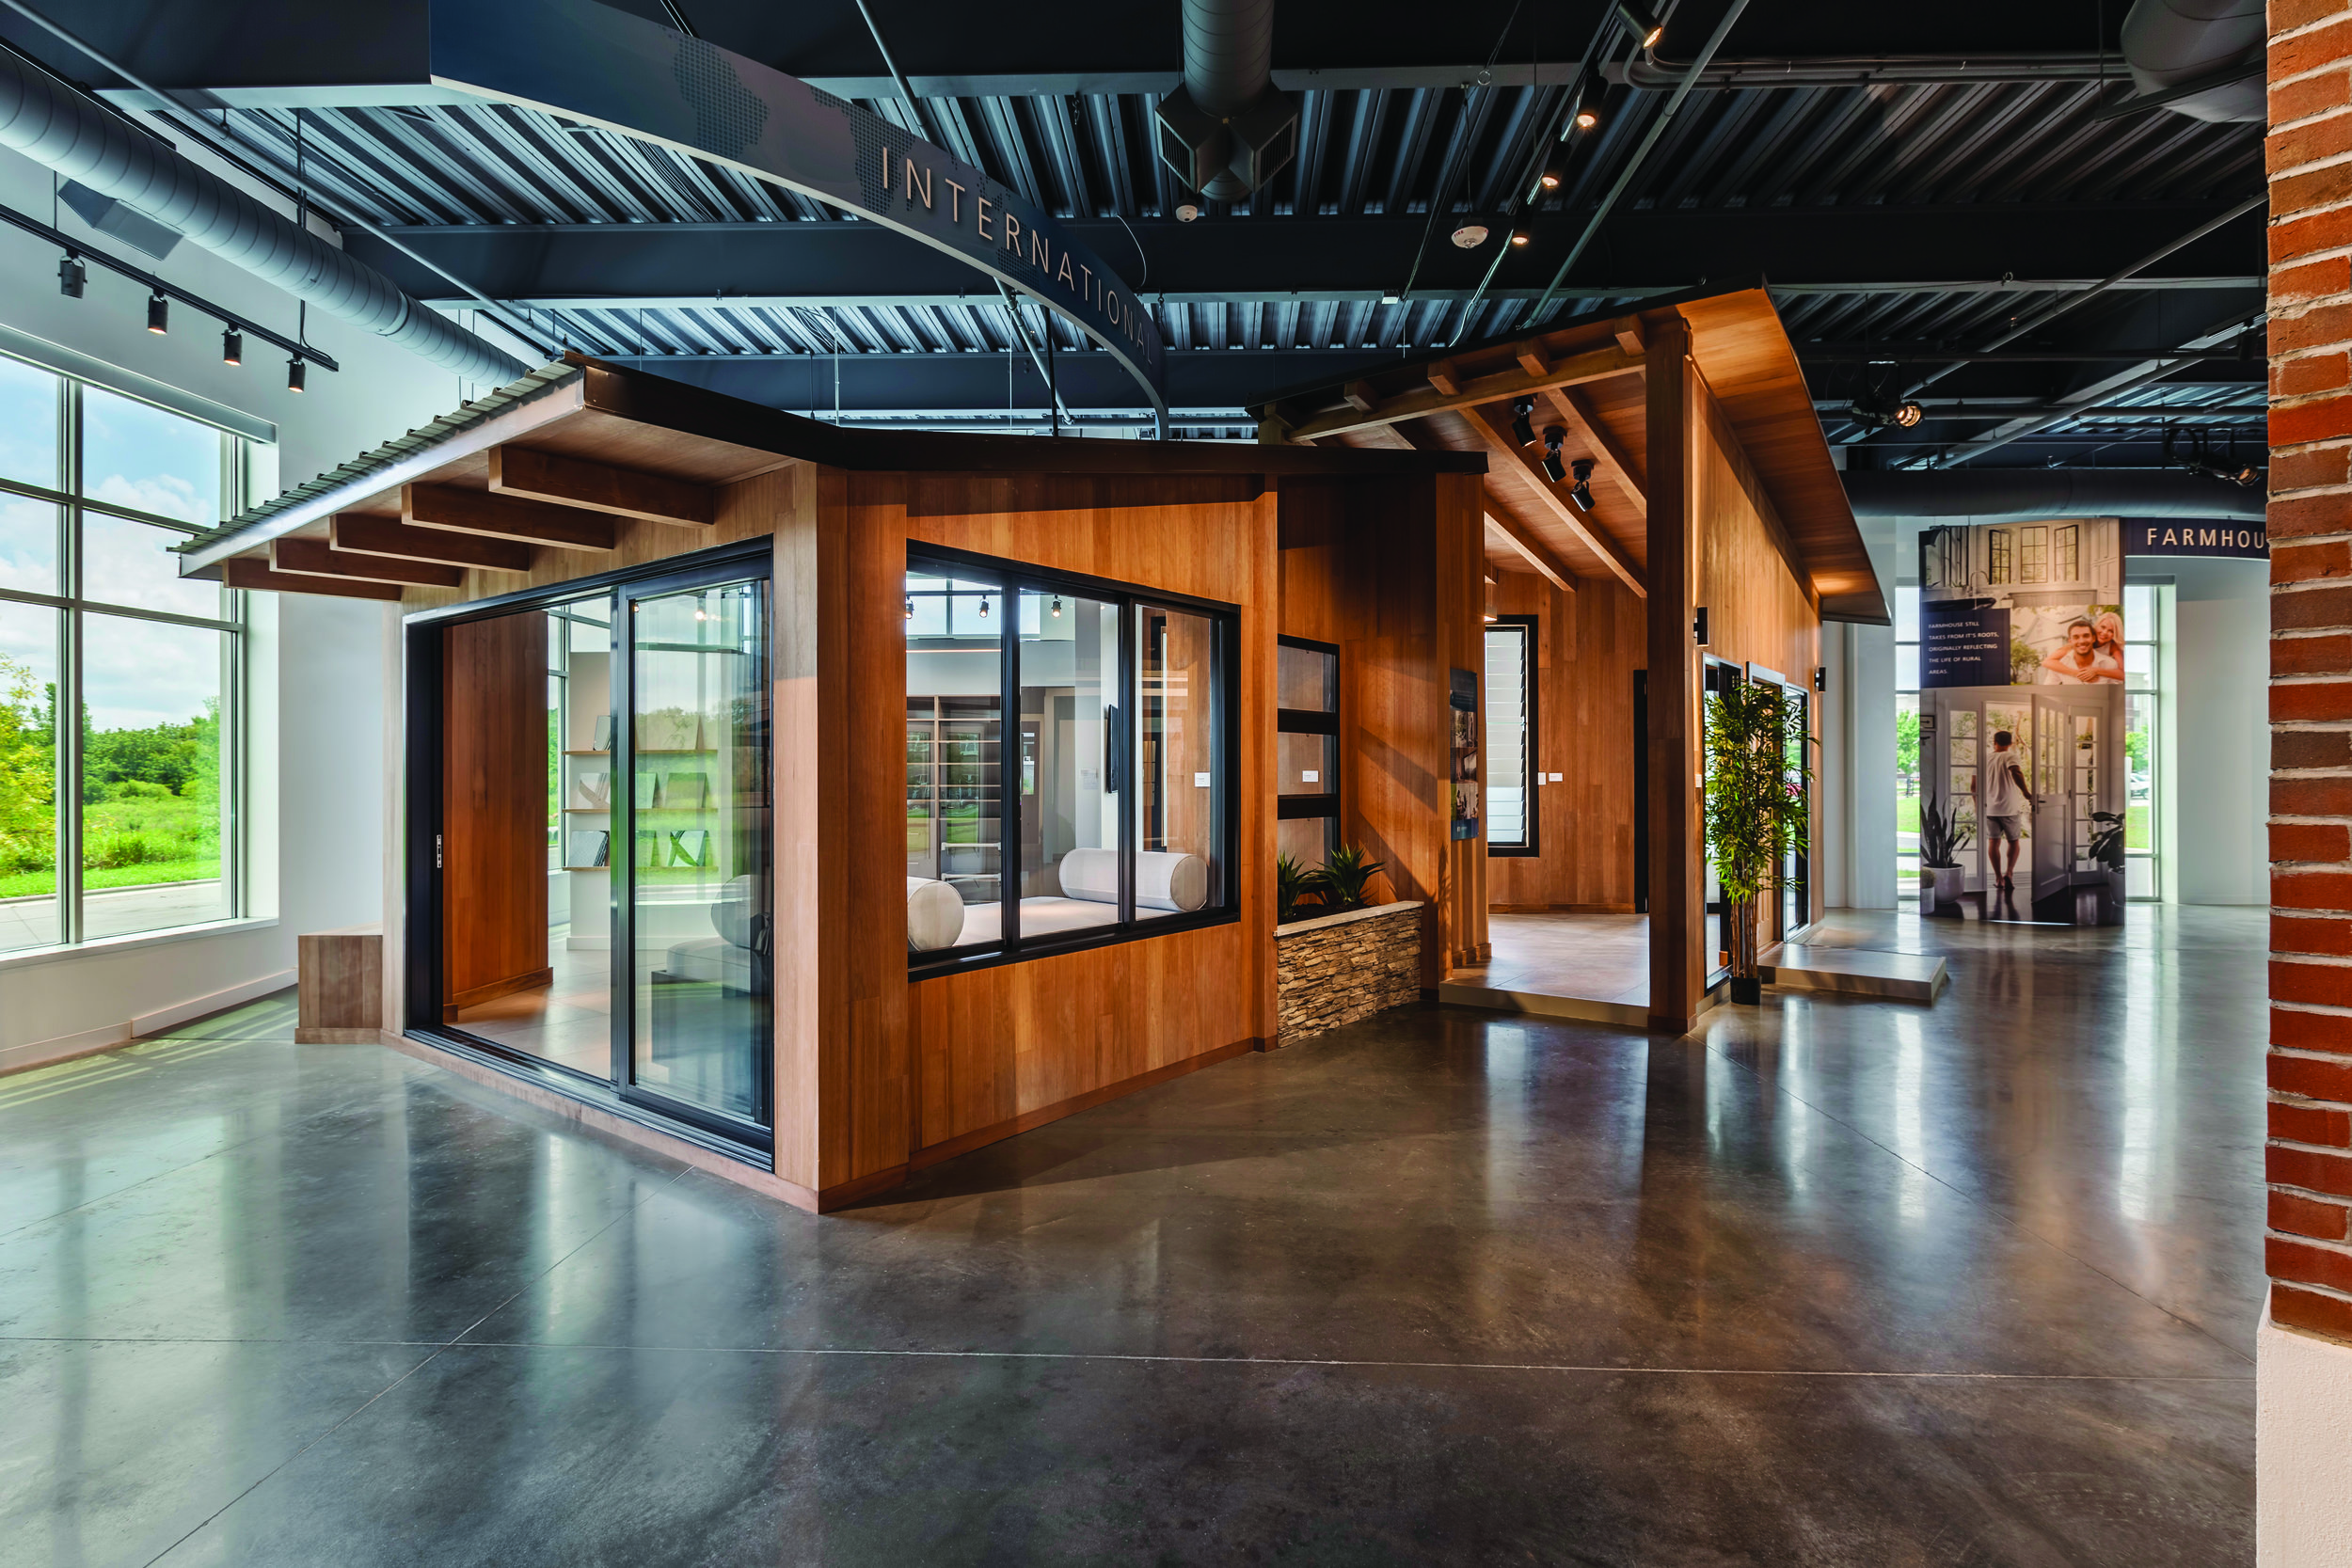 JELD-WEN Flagship Showroom Development   AXIS was asked to participate in the design and development of the company's new HQ and flagship showroom.